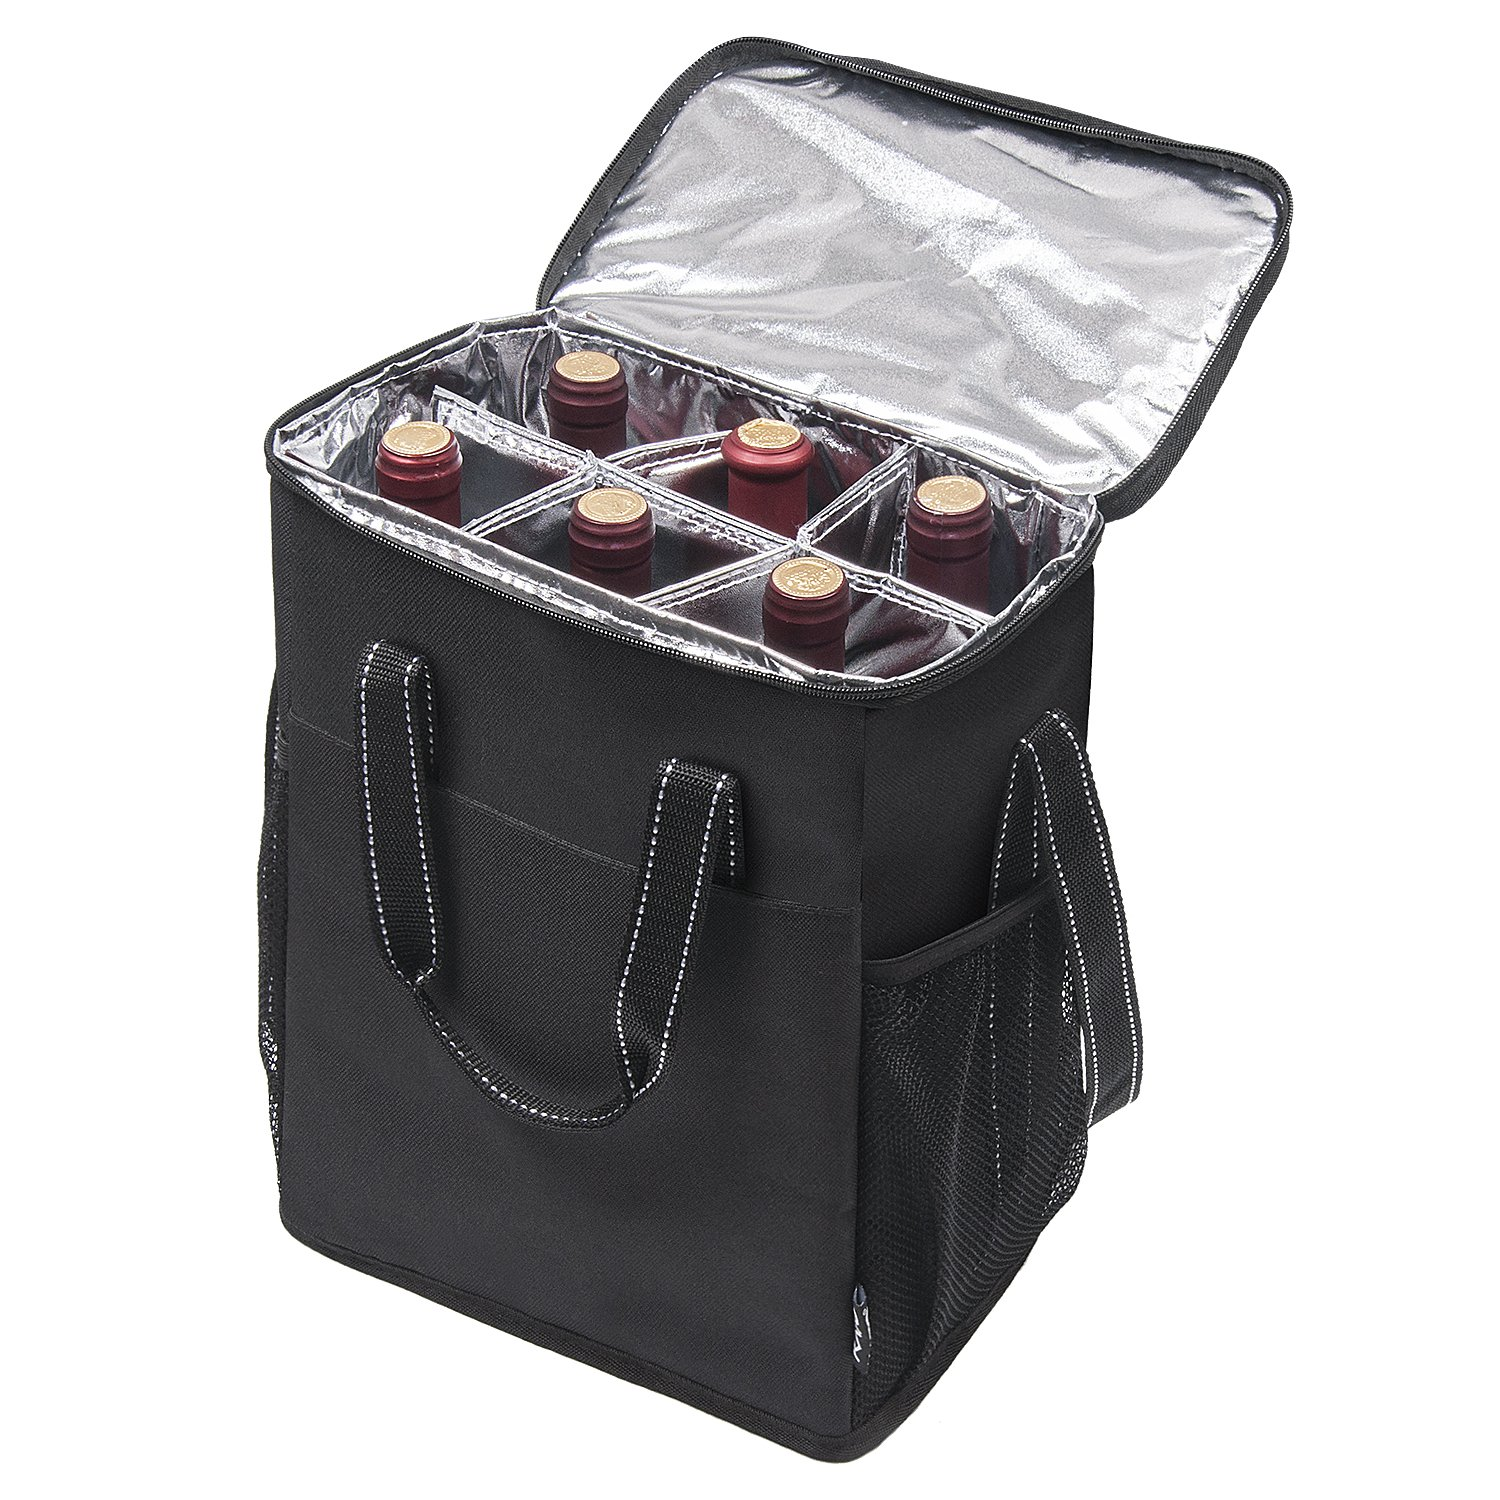 Kato 6 Bottle Wine Carrier - Insulated Portable Wine Carry Cooler Tote Bag for Travel or Picnic, Perfect Wine Lover Gift, Black